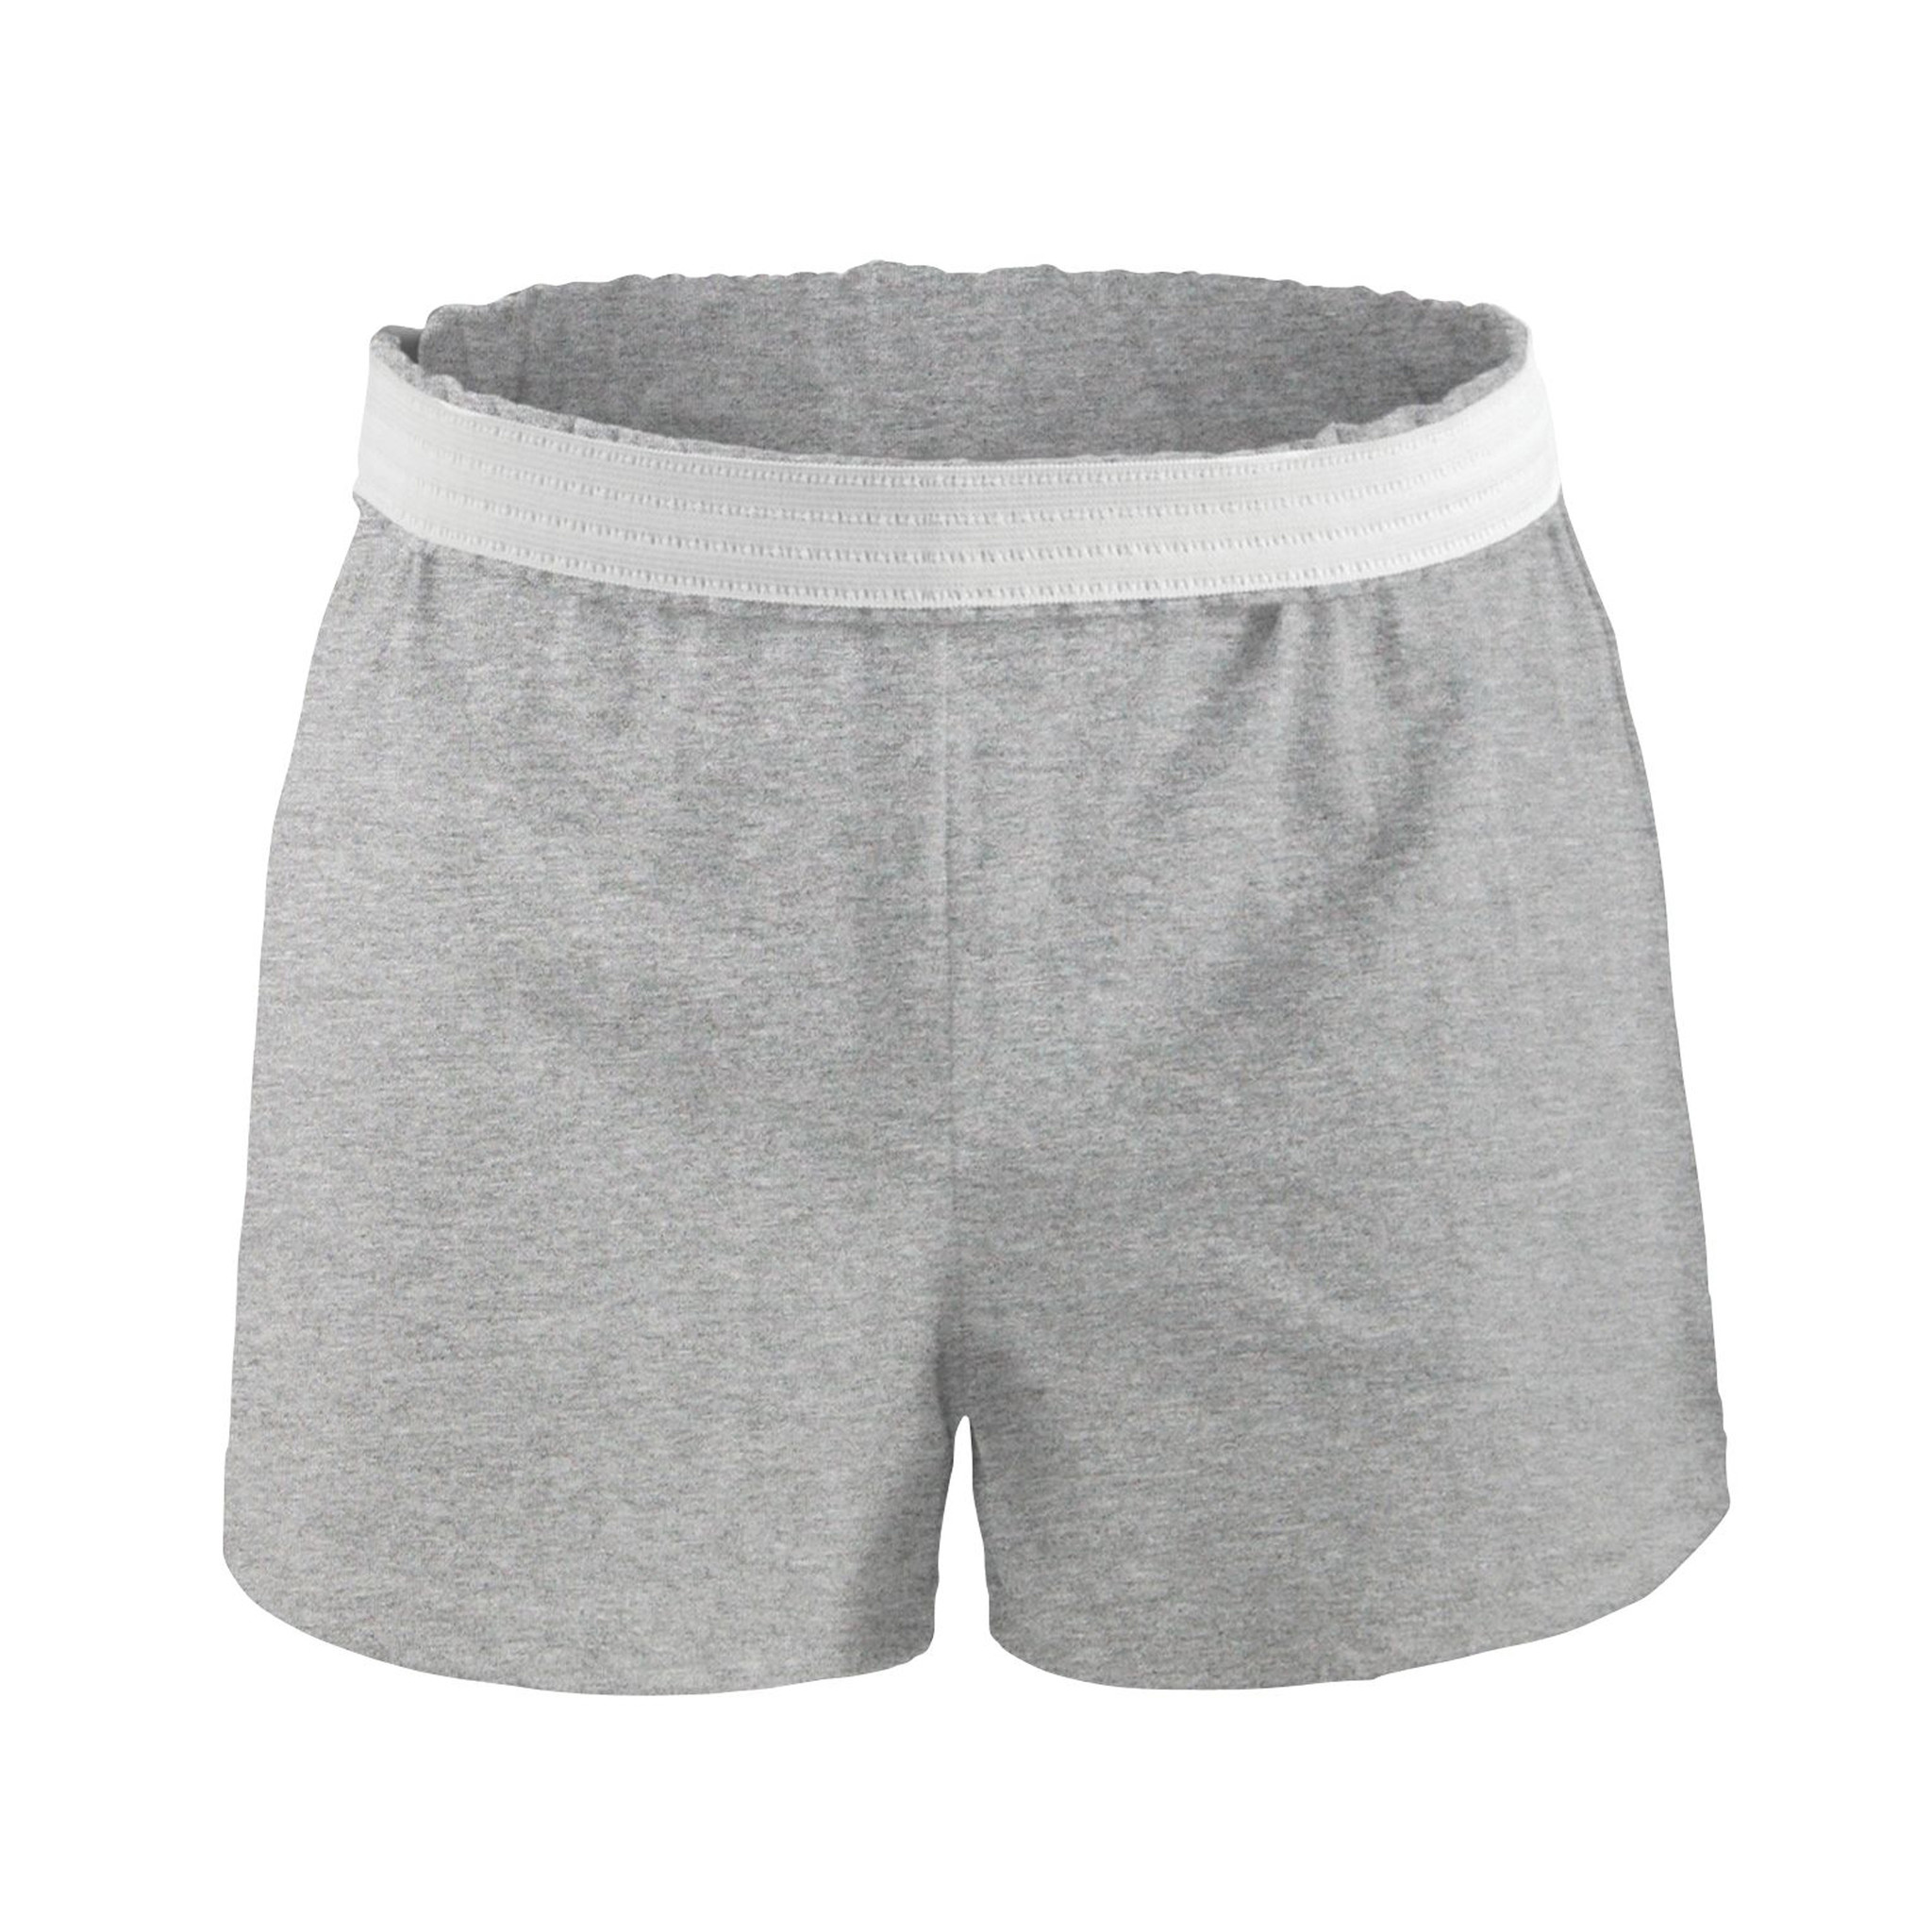 Soffe Shorts in Heather Grey